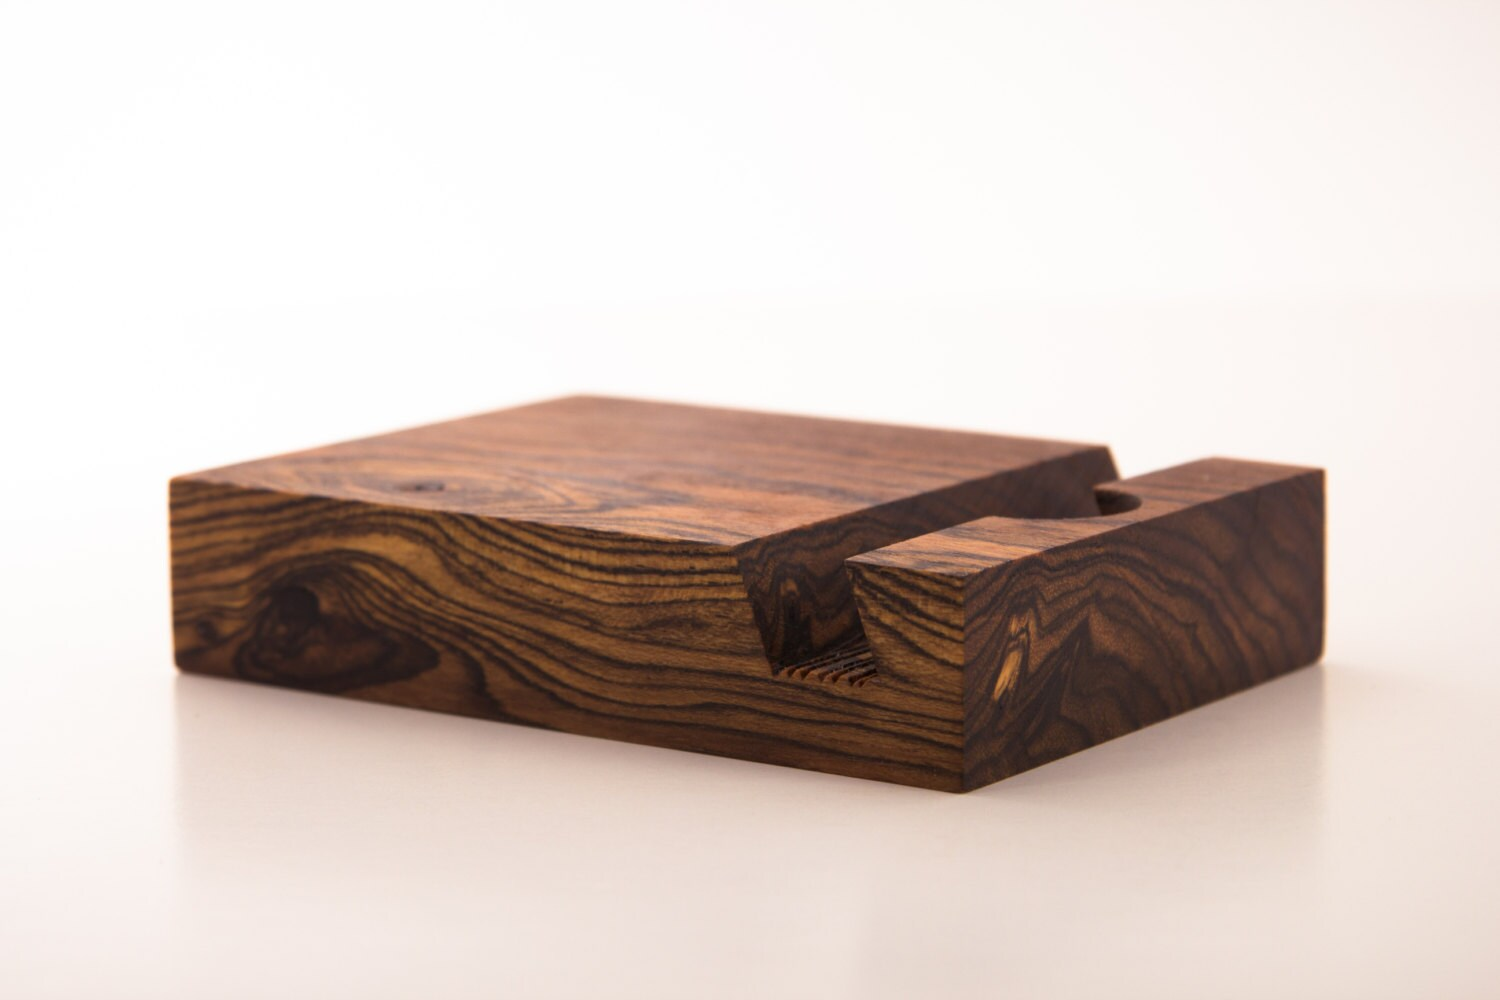 Ipad stand bocote wood tablet stand ipad docking mens zoom floridaeventfo Images